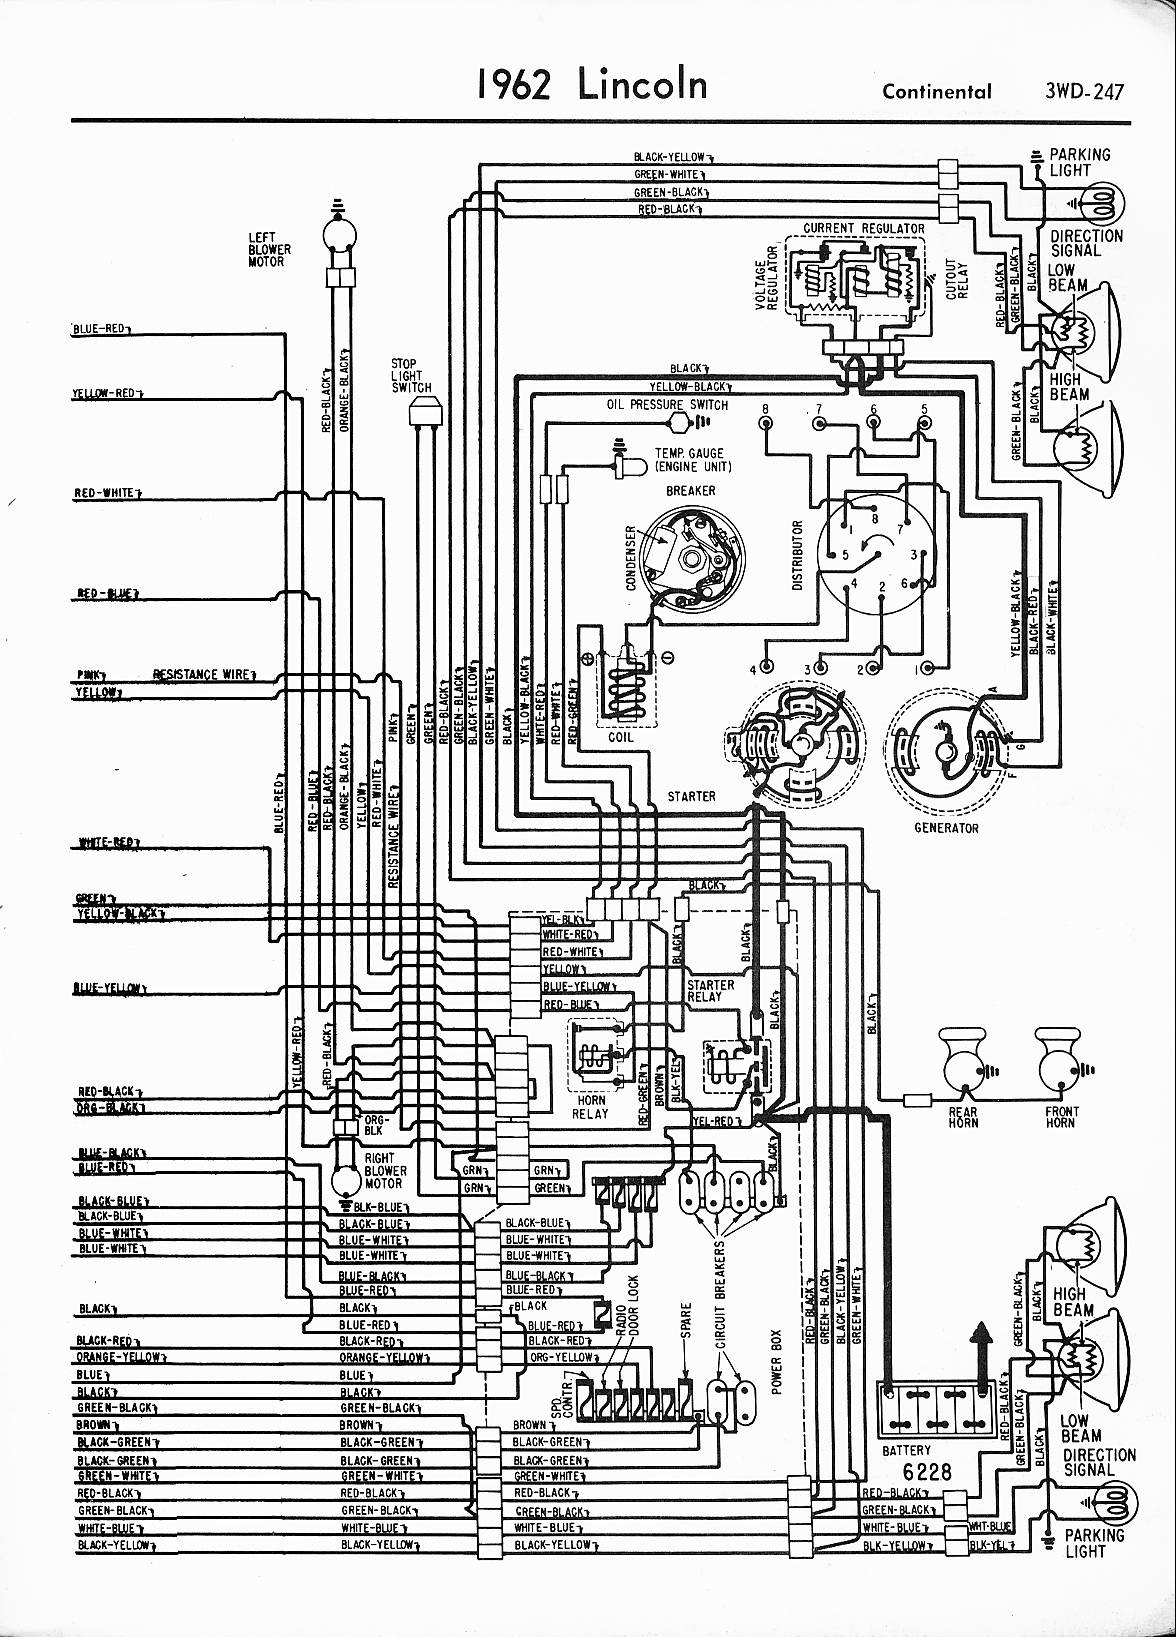 1954 Lincoln Wiring Diagram Manual Guide 2002 Navigator Fuse Box 1996 Continental Ignition Coil Library Rh 87 Muehlwald De 2000 Engine